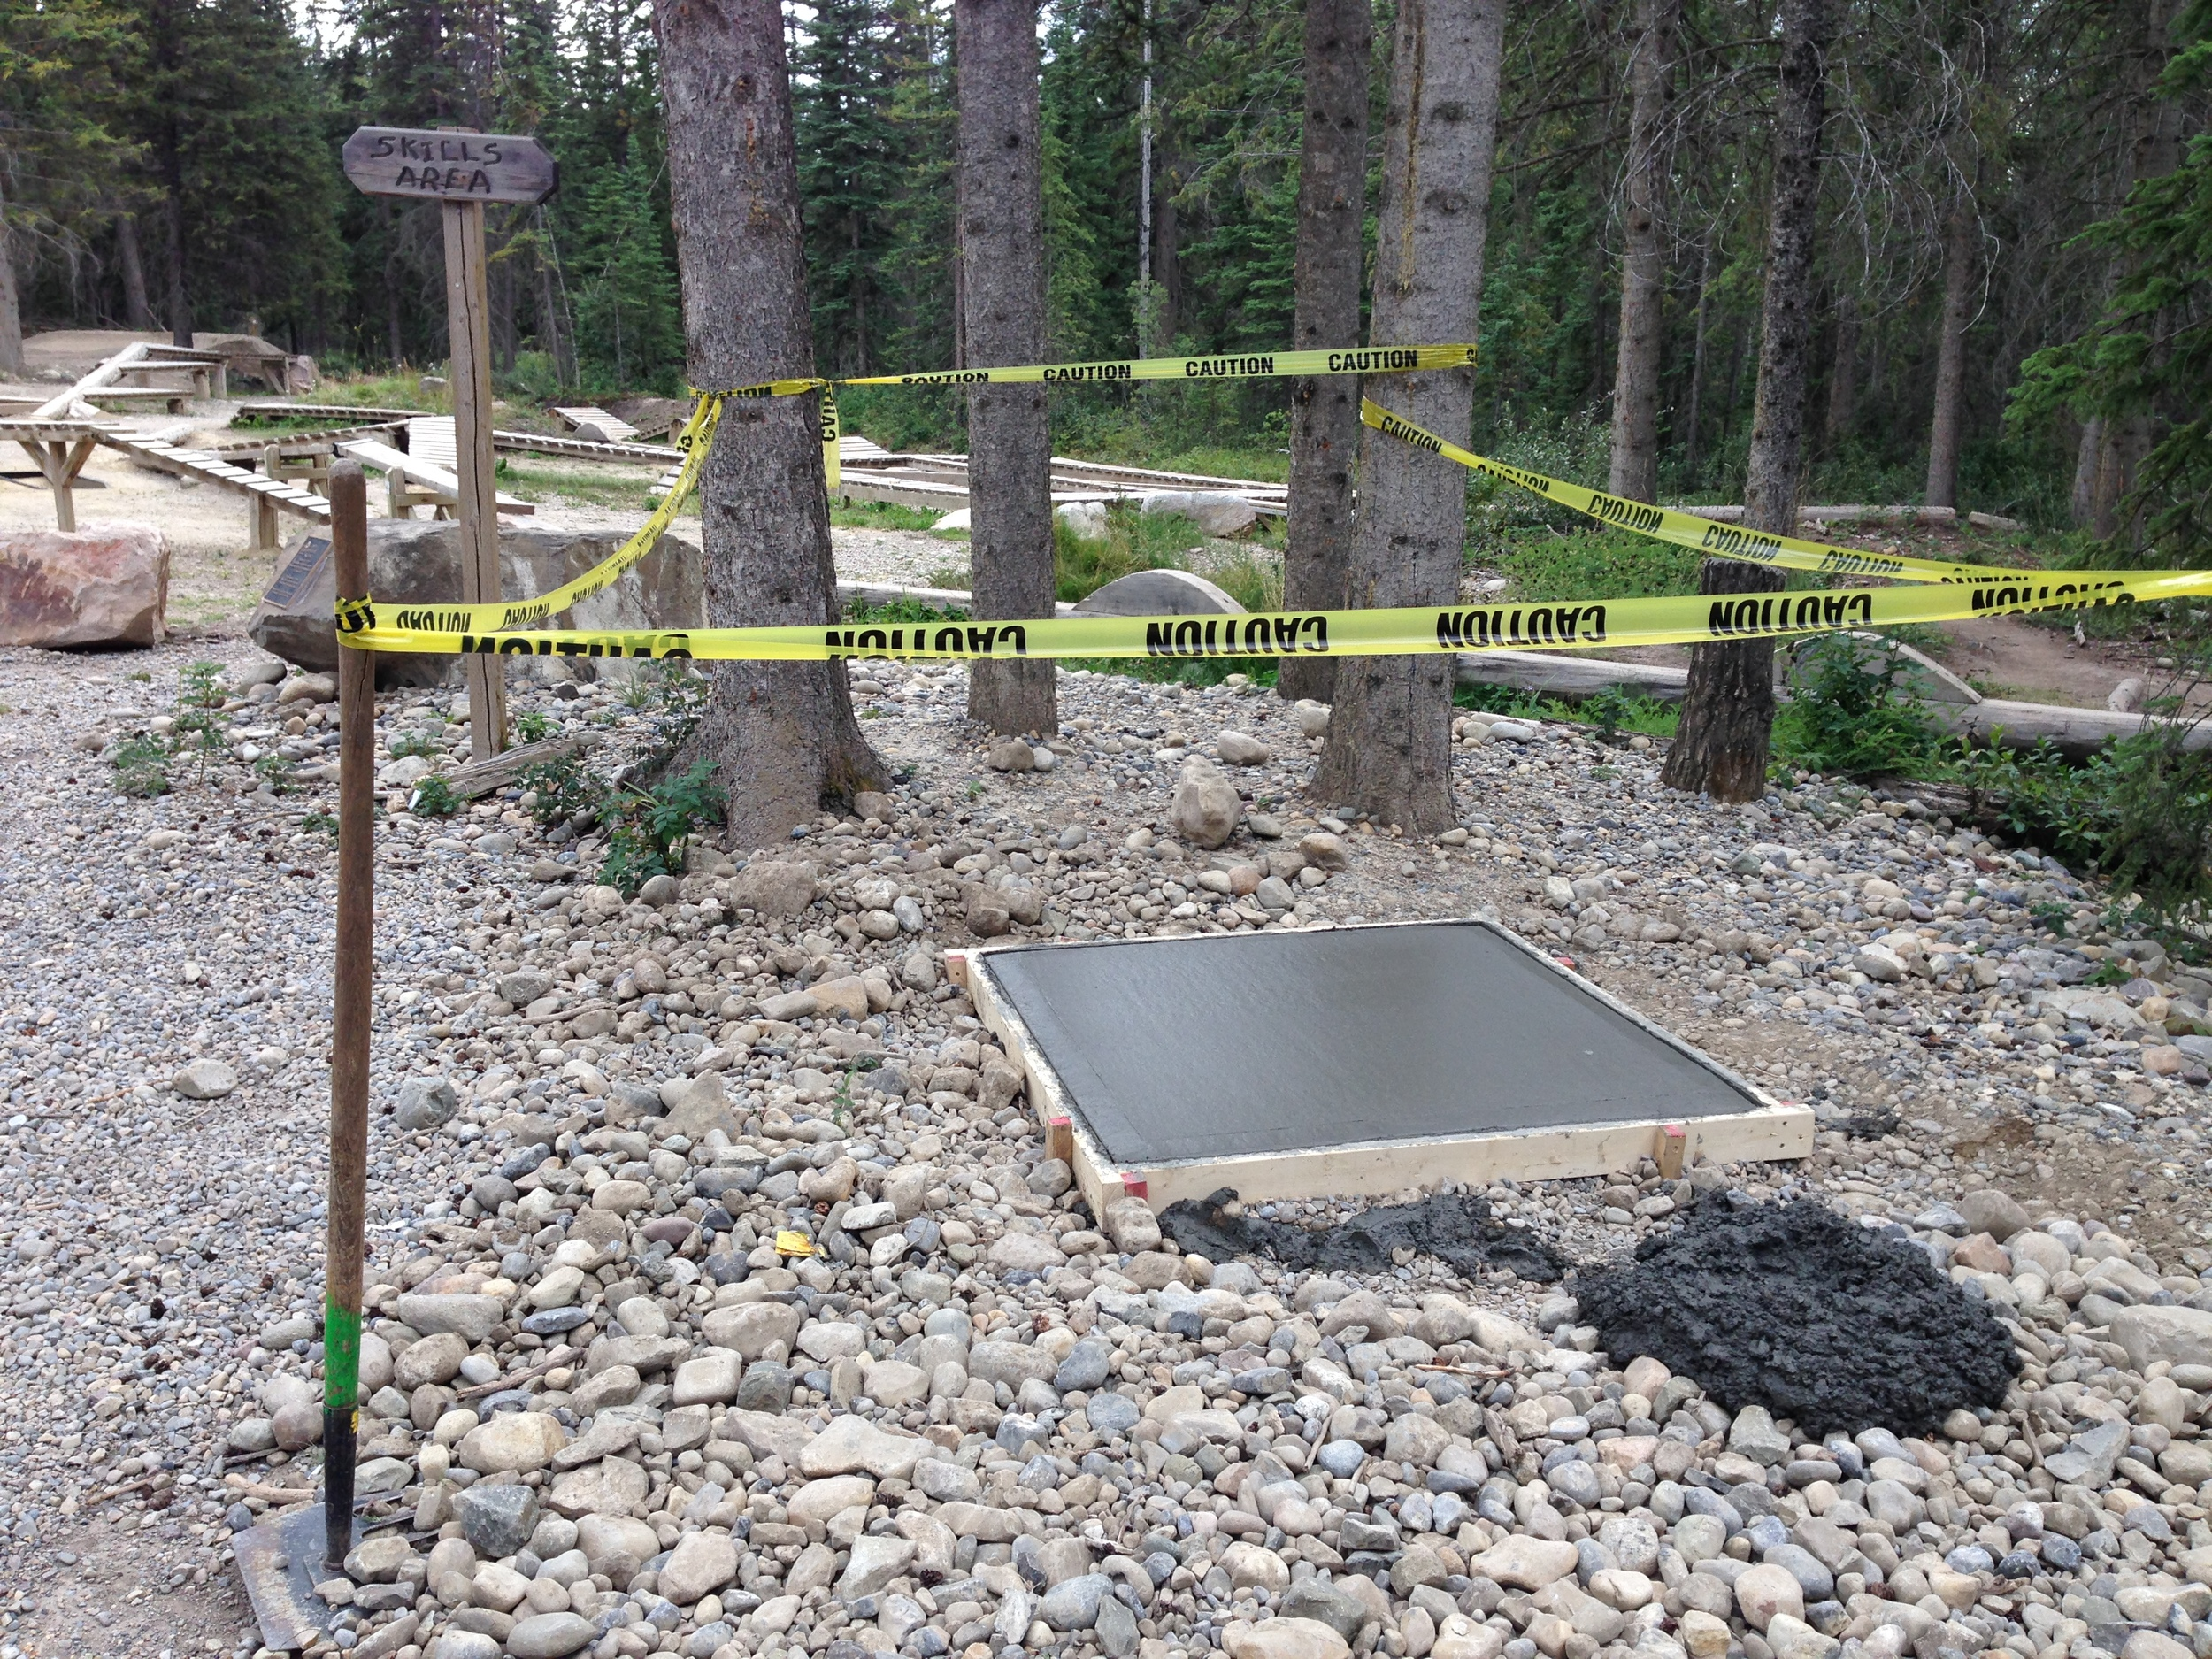 Cement was poured on Thursday for a small cement pad that will be home to a Fix-It station for the Hinton Bike Park.  Thanks to West Ridge Sand & Gravel for the donation of the cement!